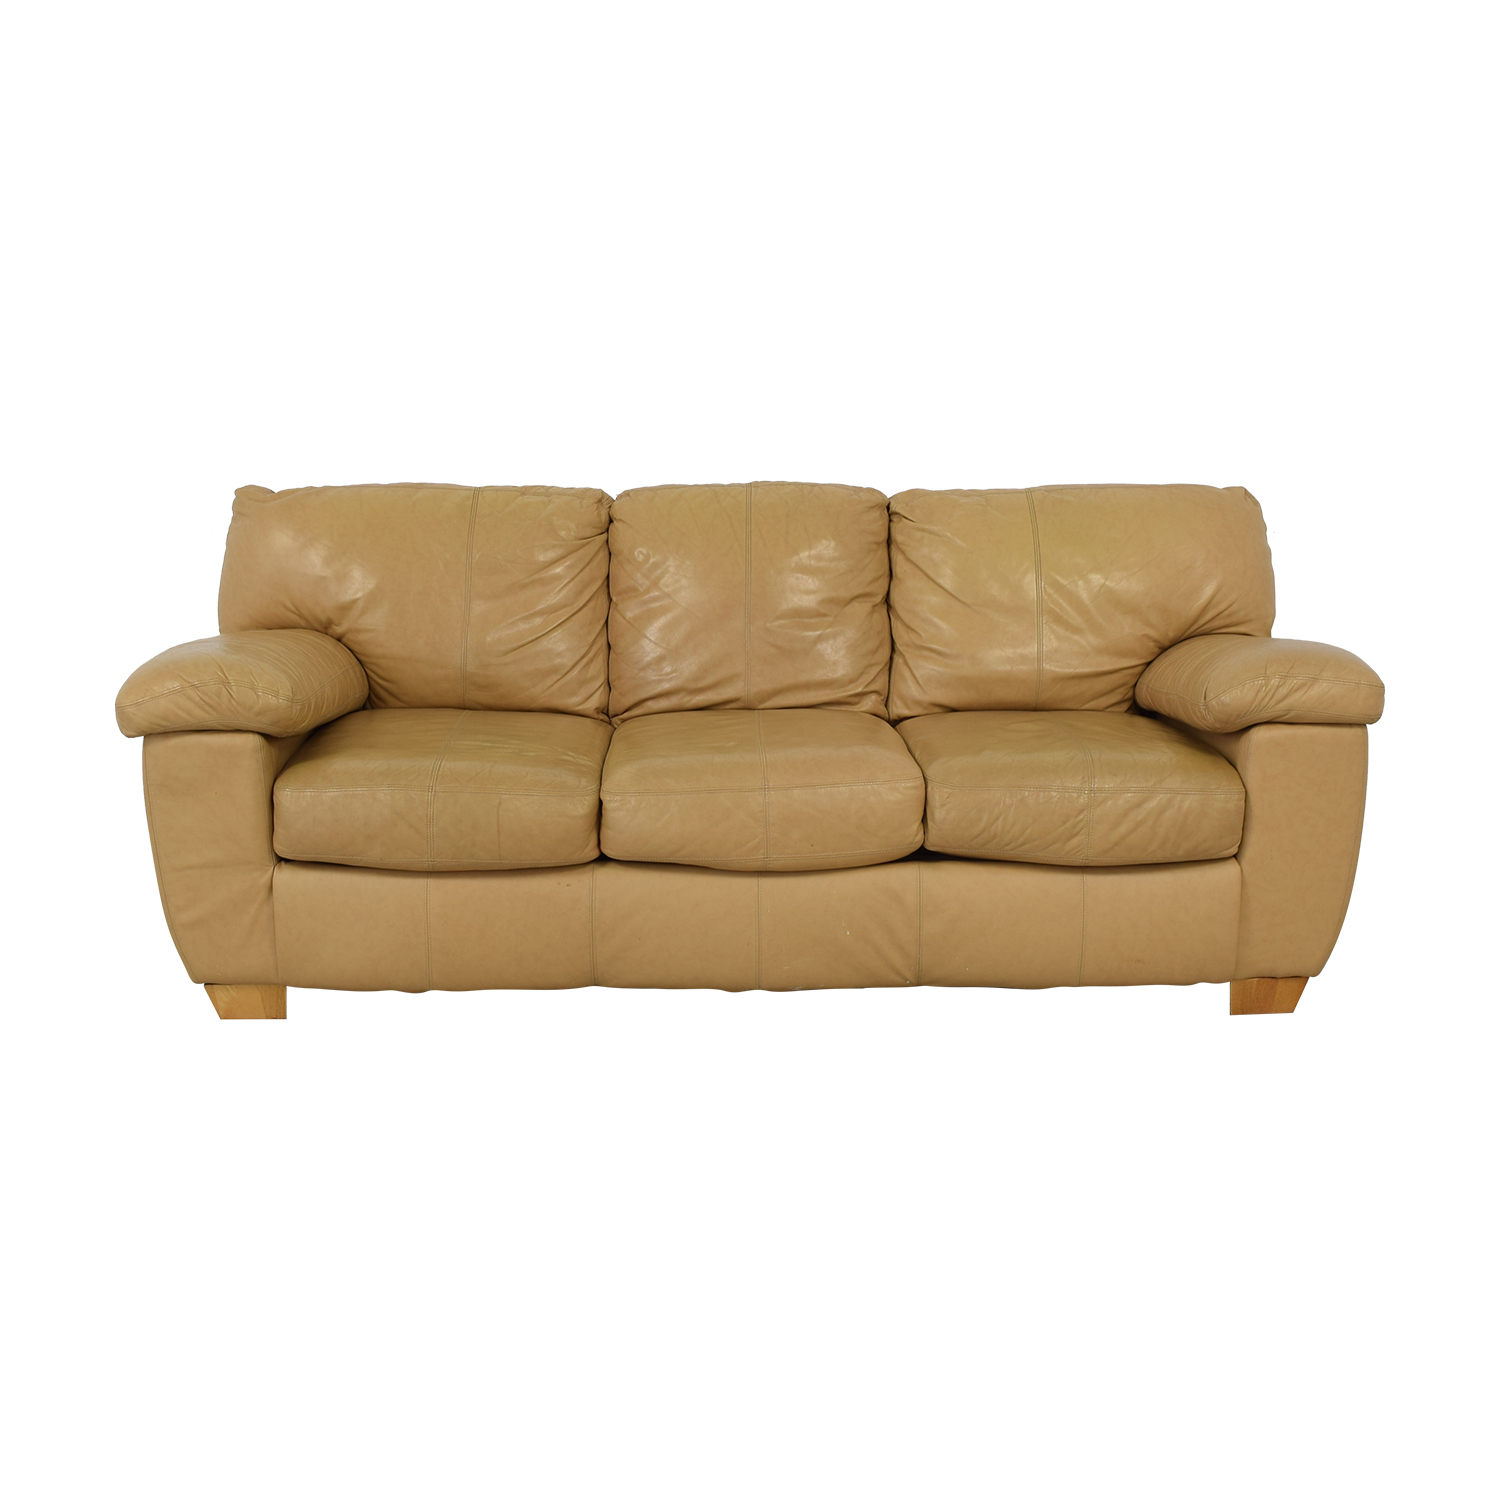 buy Ashley Furniture Three Cushion Sofa Ashley Furniture Sofas